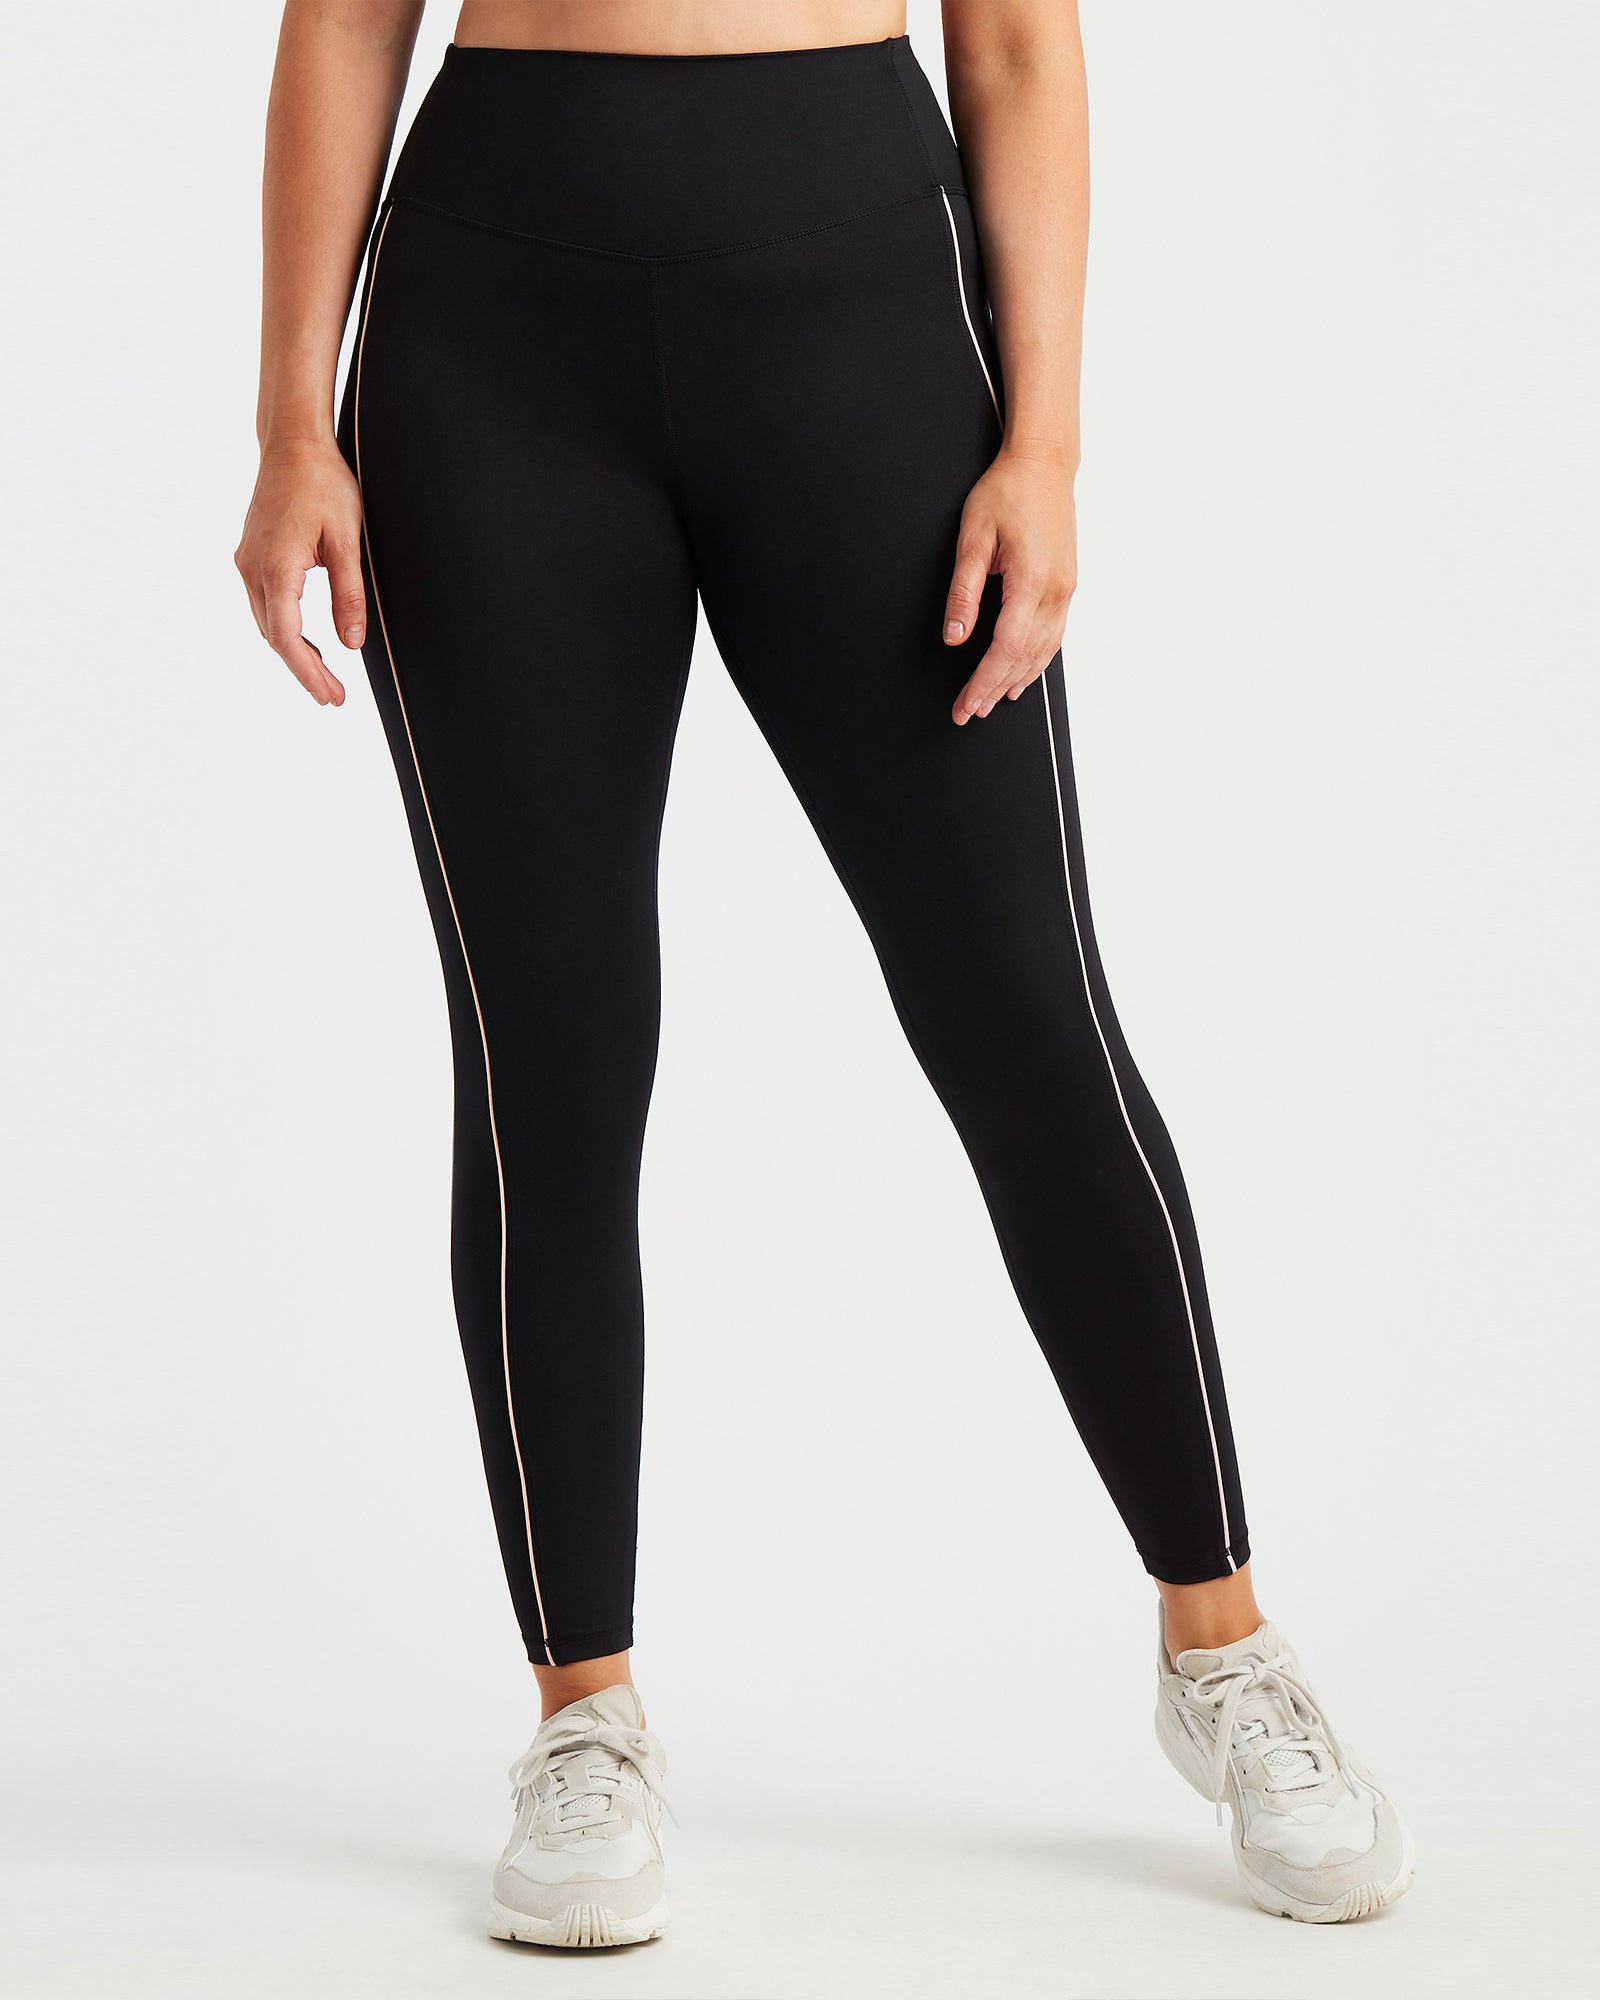 Pasadena High Waist Full Length Legging